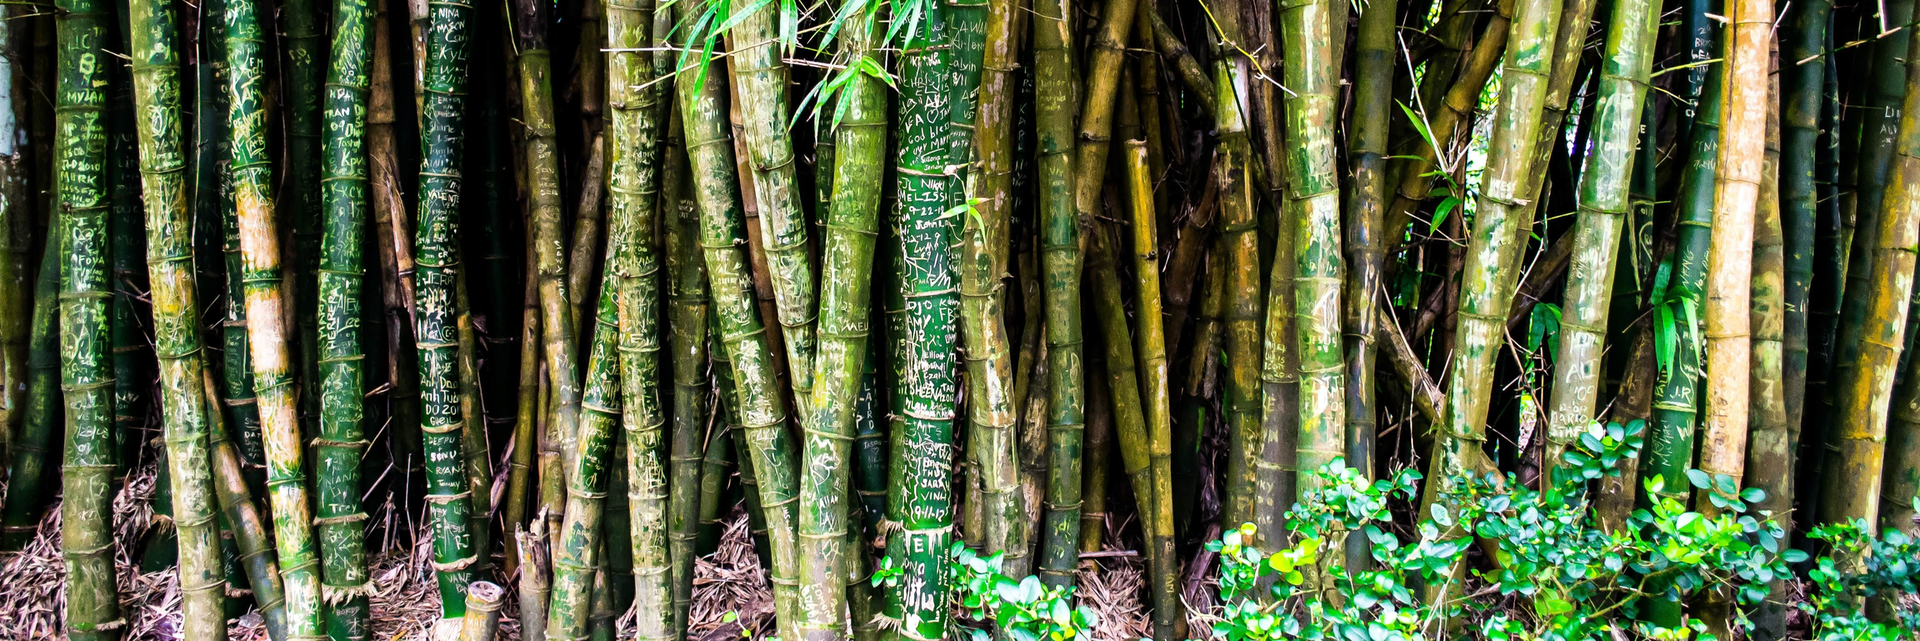 5 Reasons Why Bamboo Is A Better Fabric